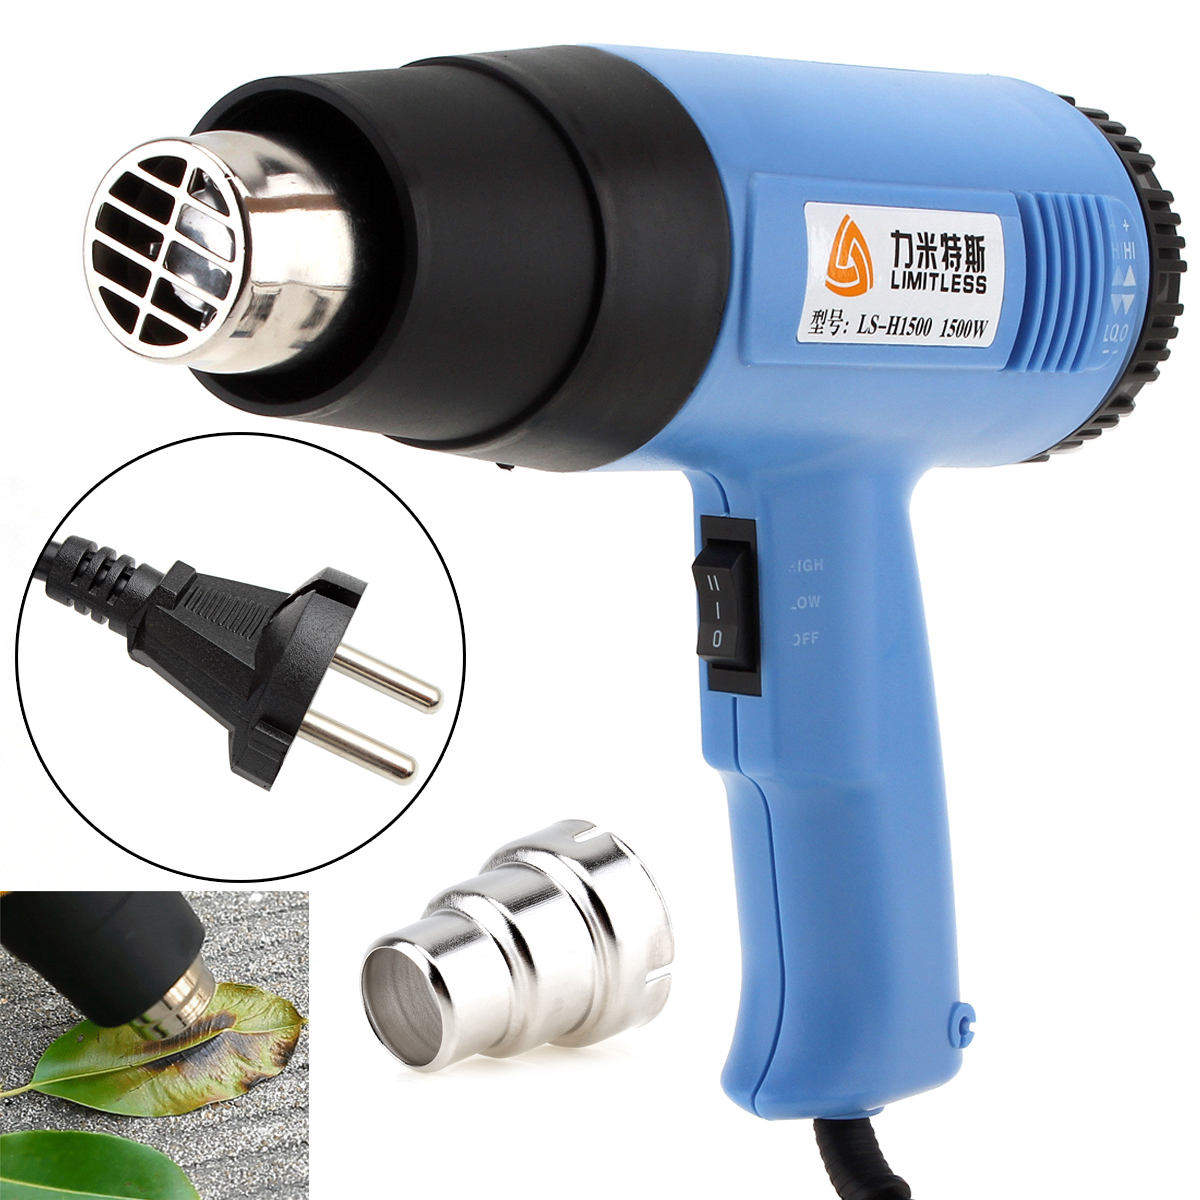 AC220V EU Plug 1500W Adjustable Air Volume Electric Heat Gun Multifunctional Handheld Hot Air Gun всепогодная акустика tannoy dvs 6t black